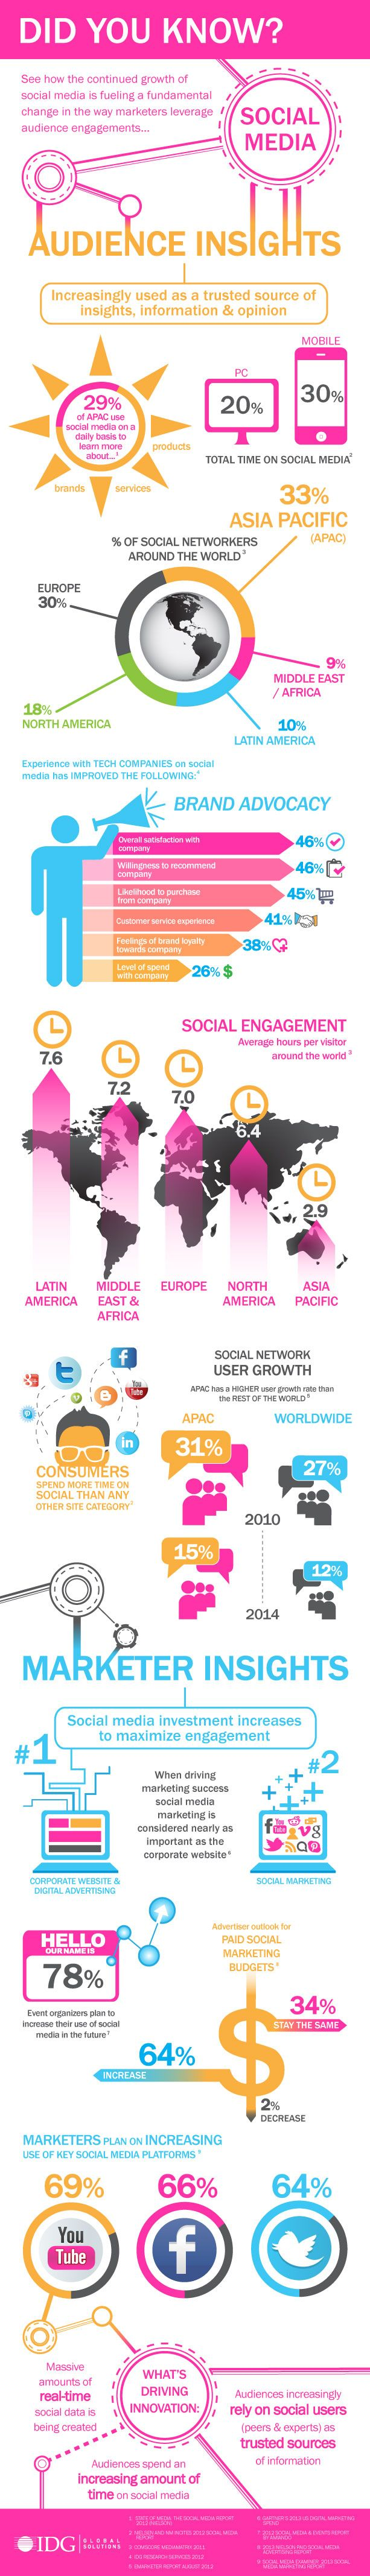 Marketer and Audience Insights on Social Media Worldwide [#infographic]